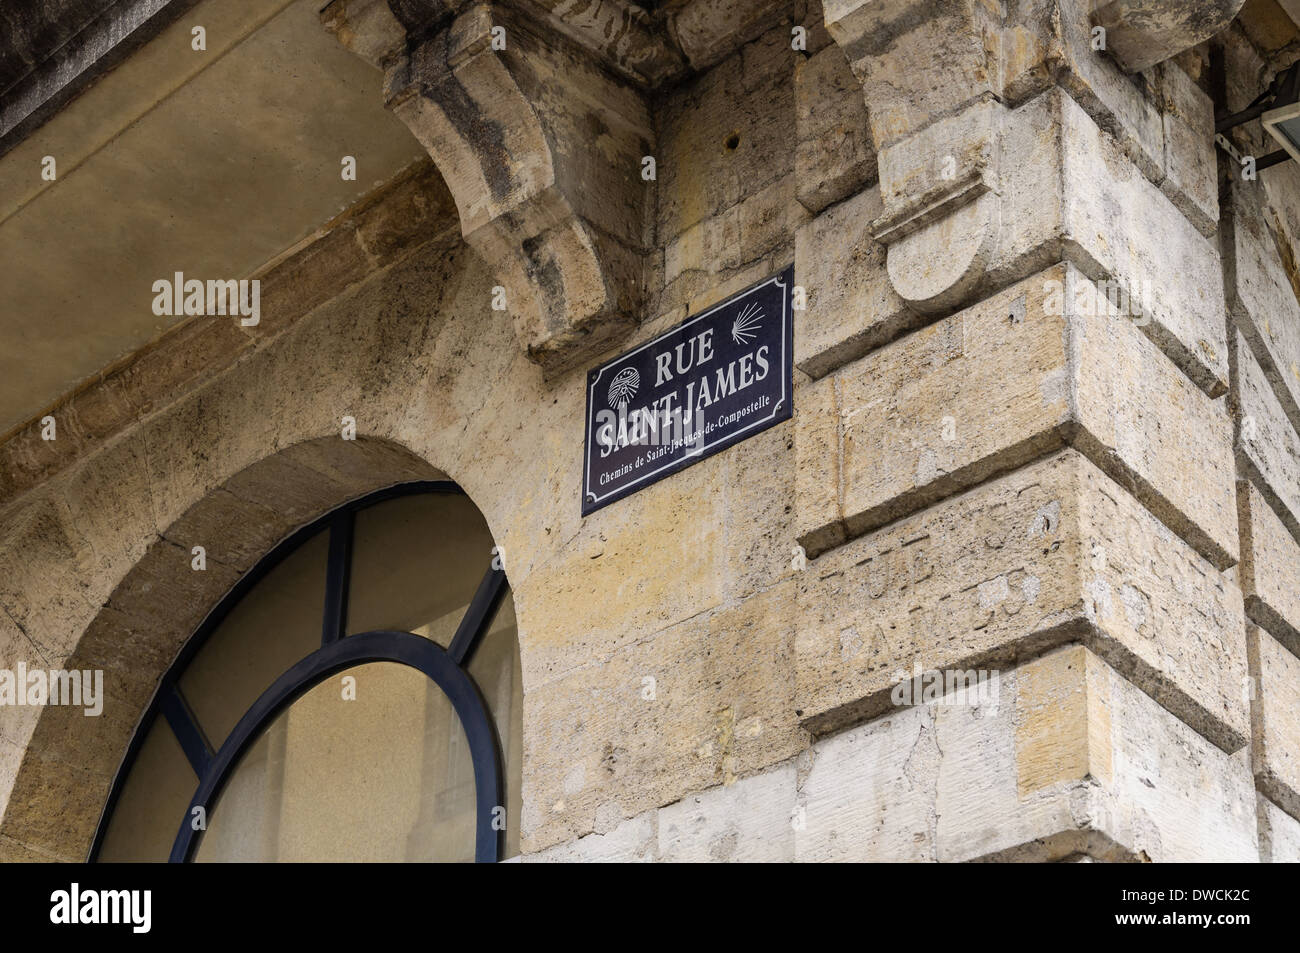 Old way of St James of Compostela in Bordeaux old town. France - Stock Image